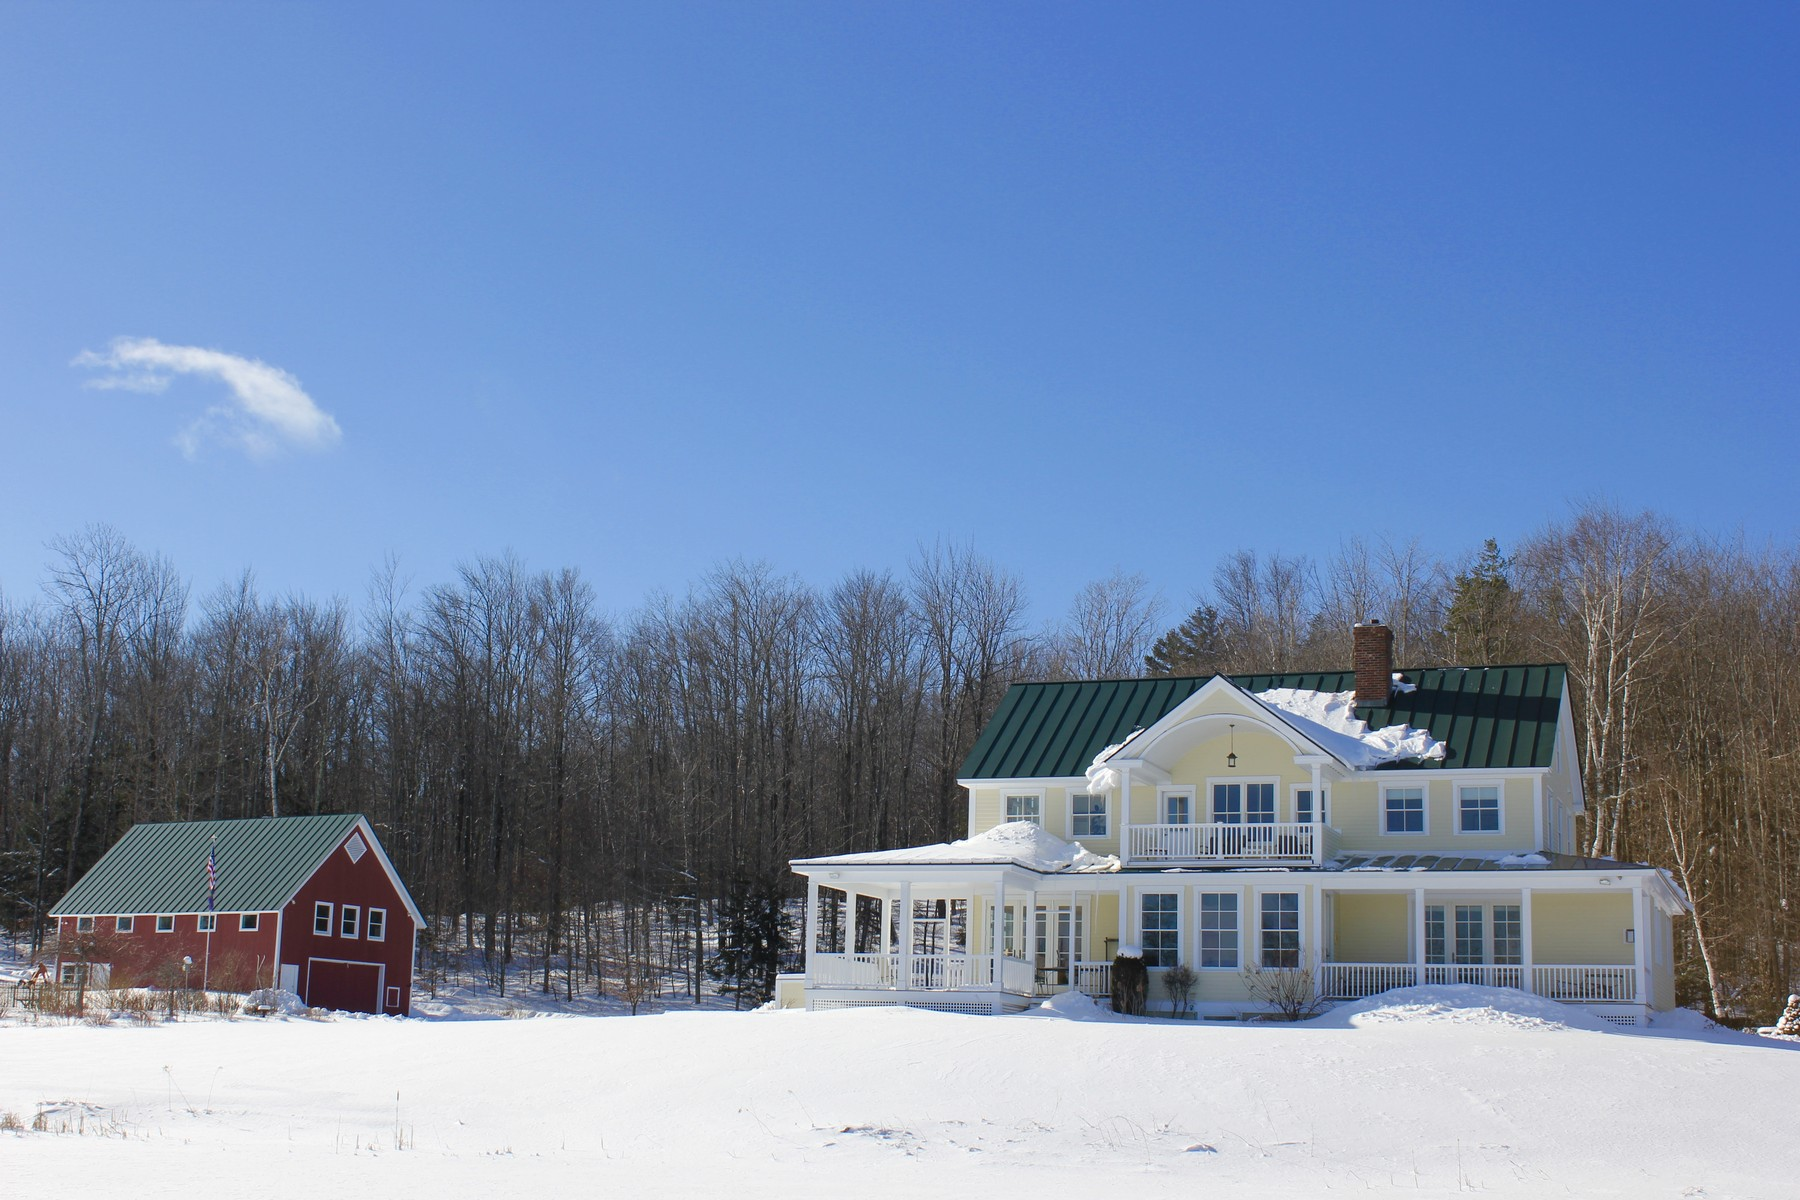 Single Family Home for Sale at South Hill Hideaway 93 Godfrey Rd Ludlow, Vermont 05149 United States